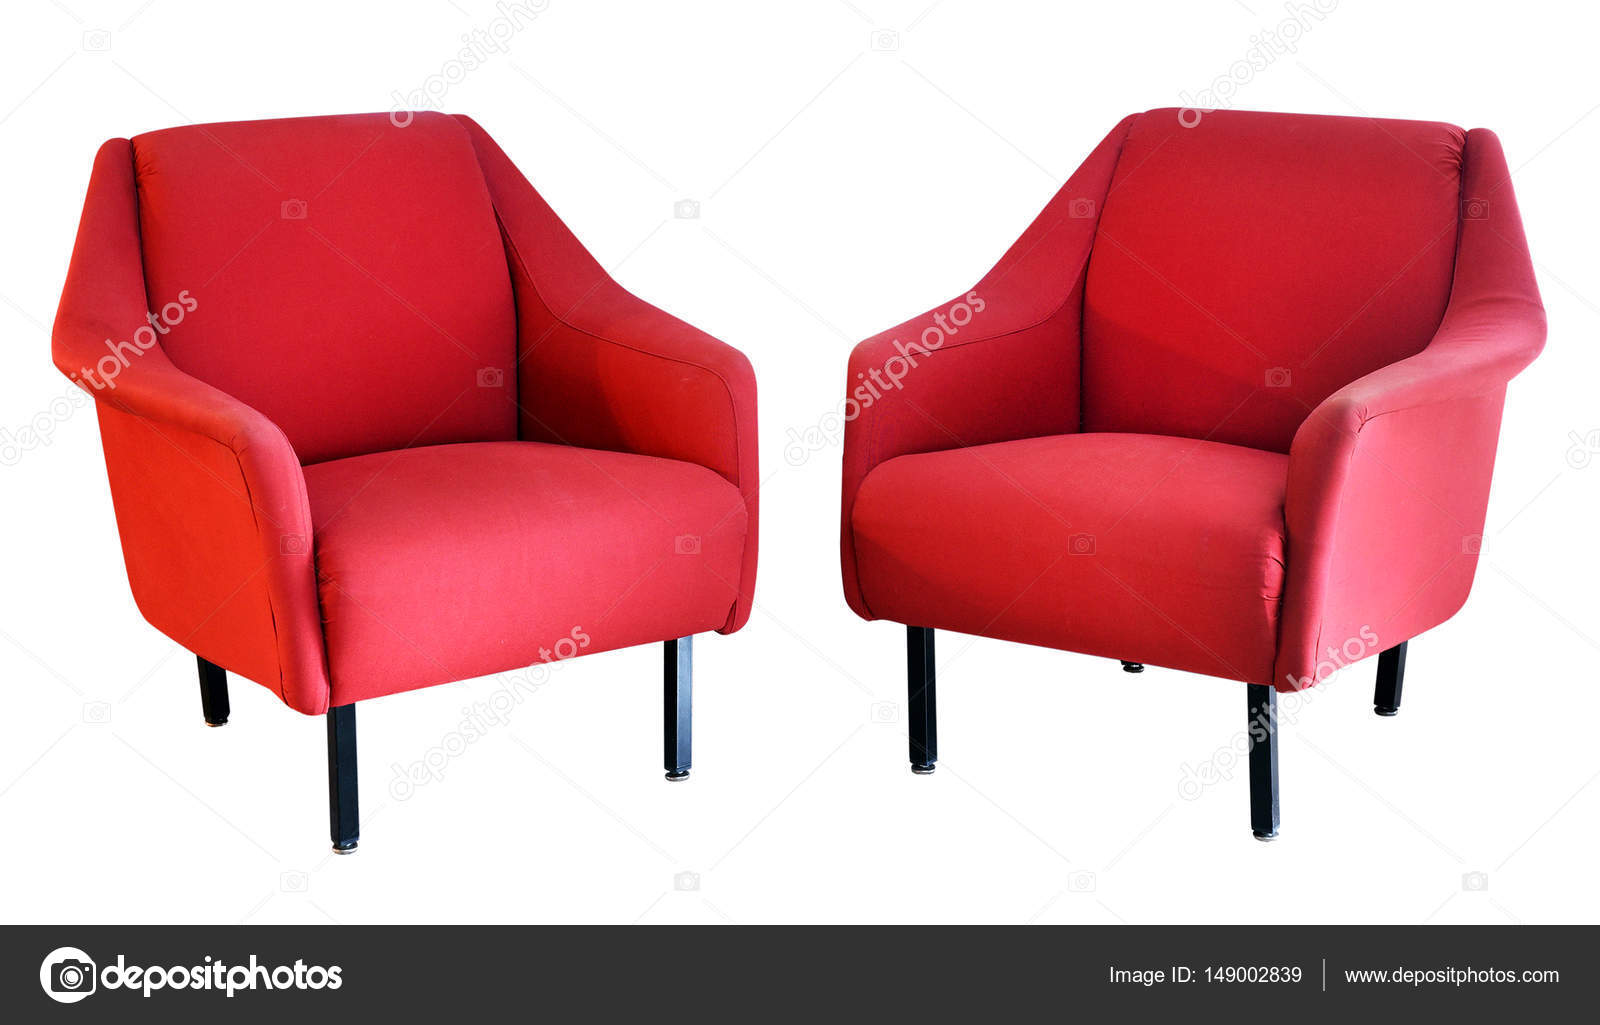 Twee Rode Fauteuils.Twee Rode Fauteuils Op Wit Stockfoto C Photology1971 149002839